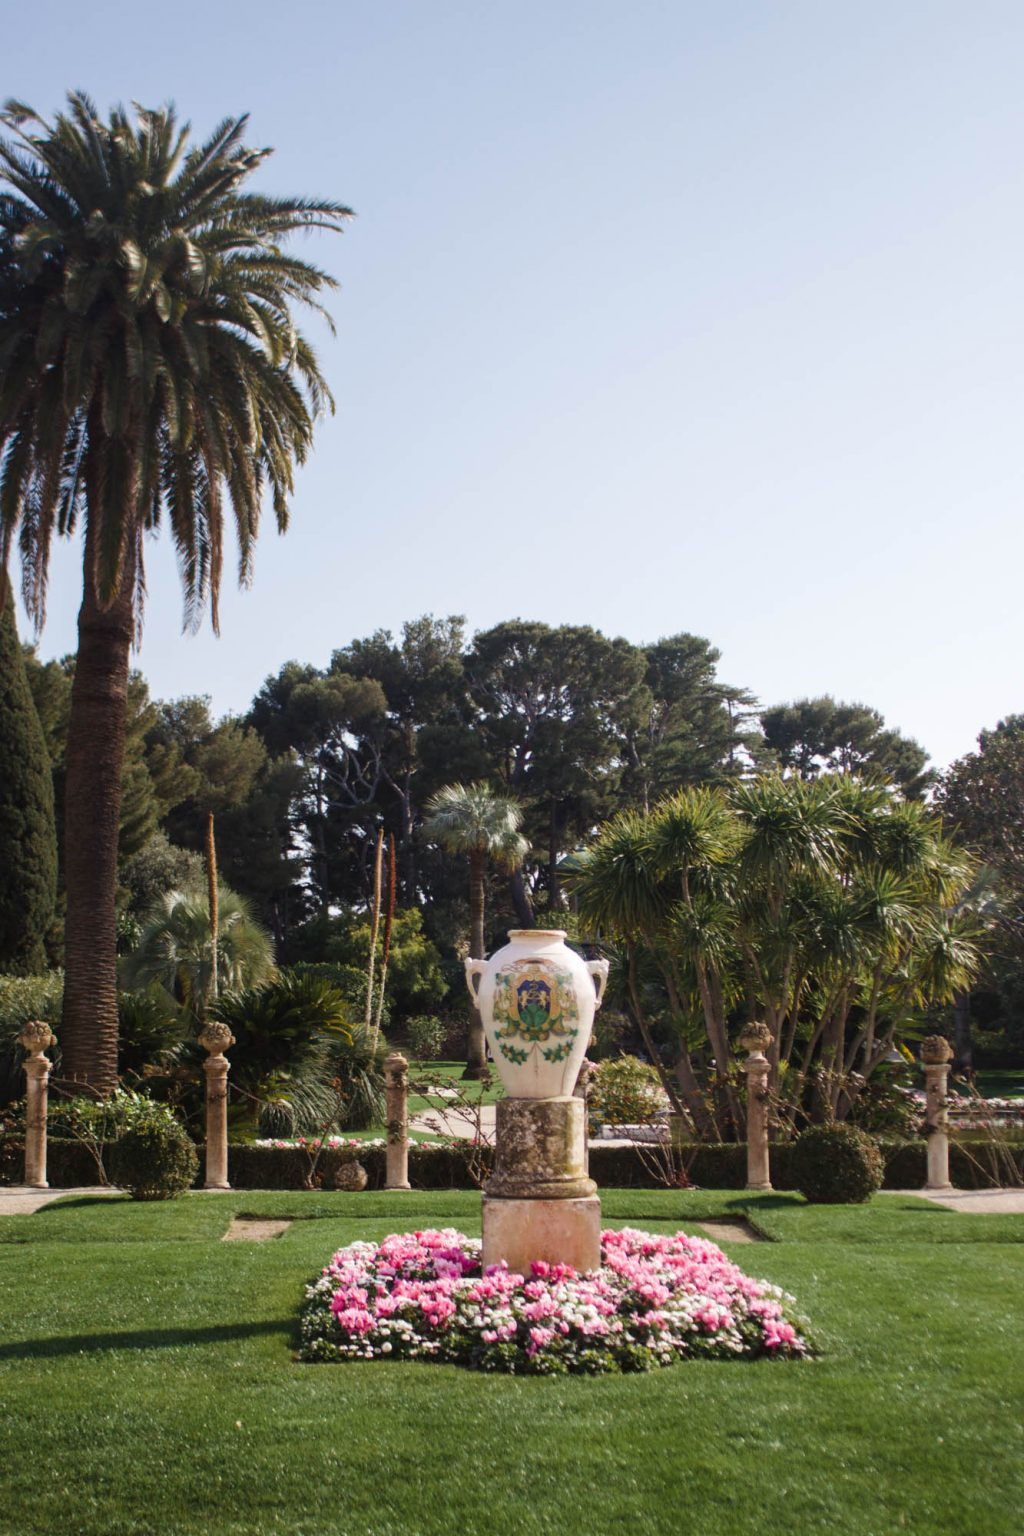 le jardin de Villa Ephrussi de Rothschild, the french riviera, cote d'azure, nice france, nice, france, travel, european attractions, european travel, what to do in france, the south of france